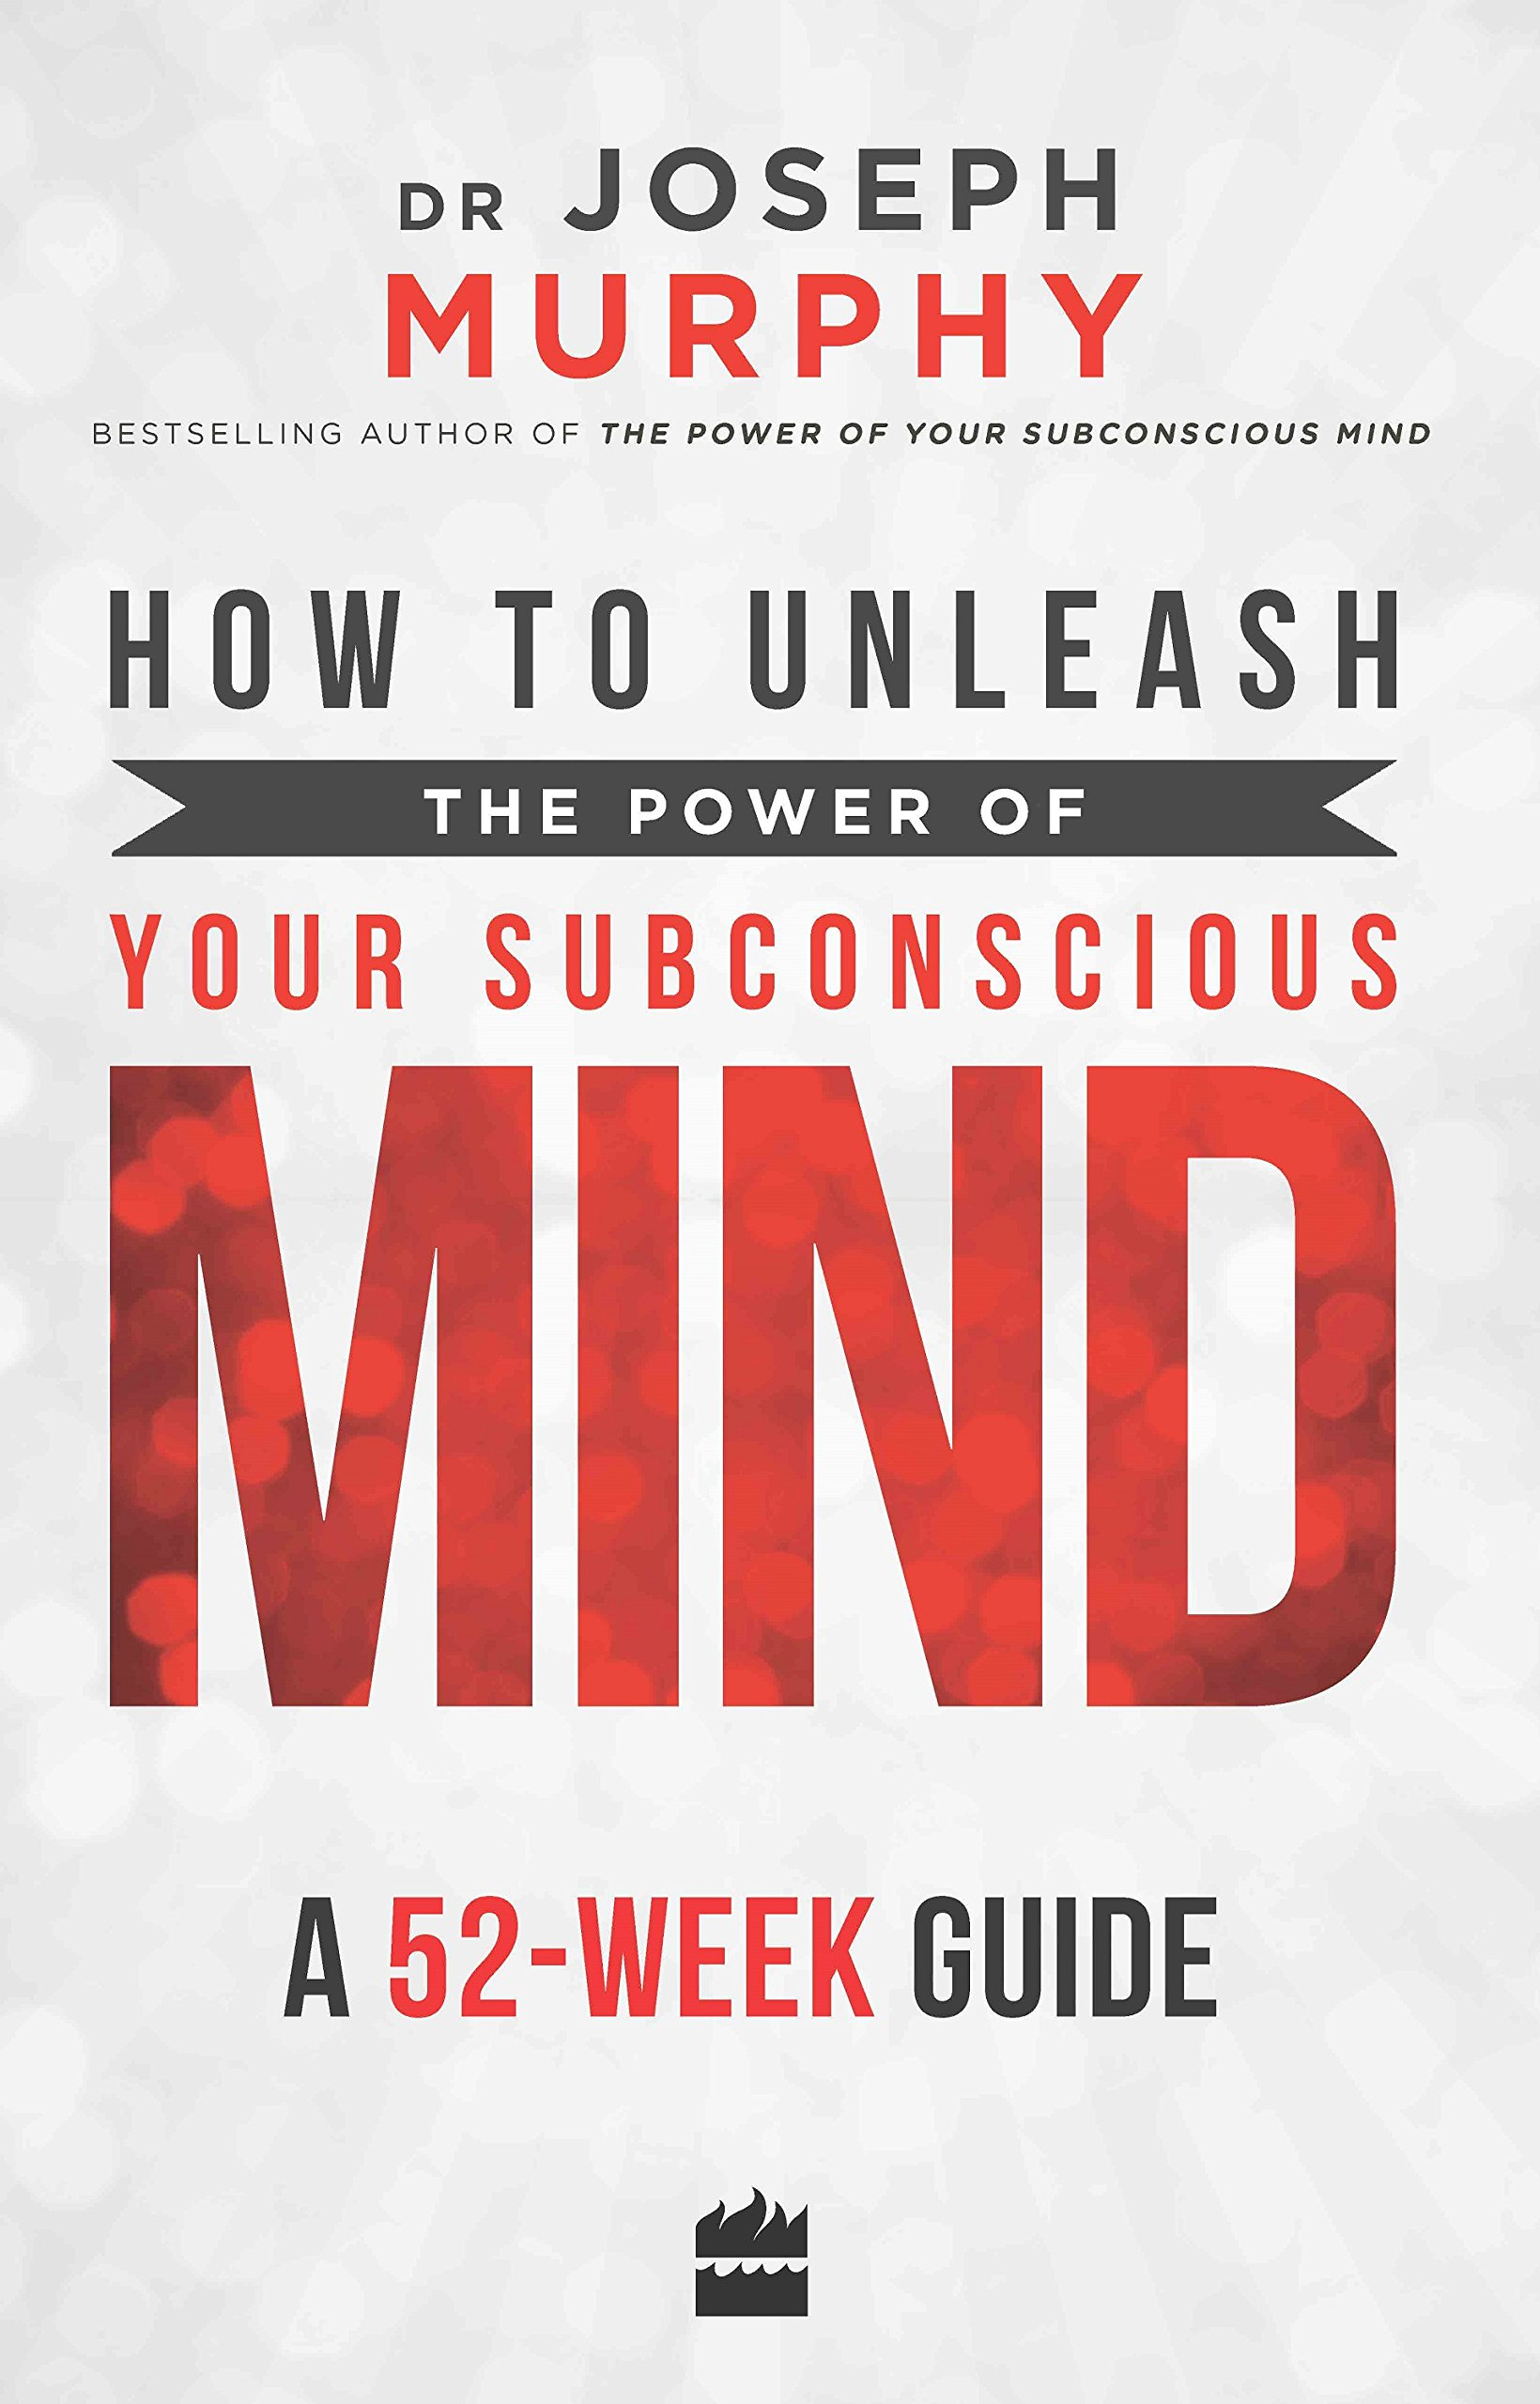 Of subconscious your mind tamil power pdf in the